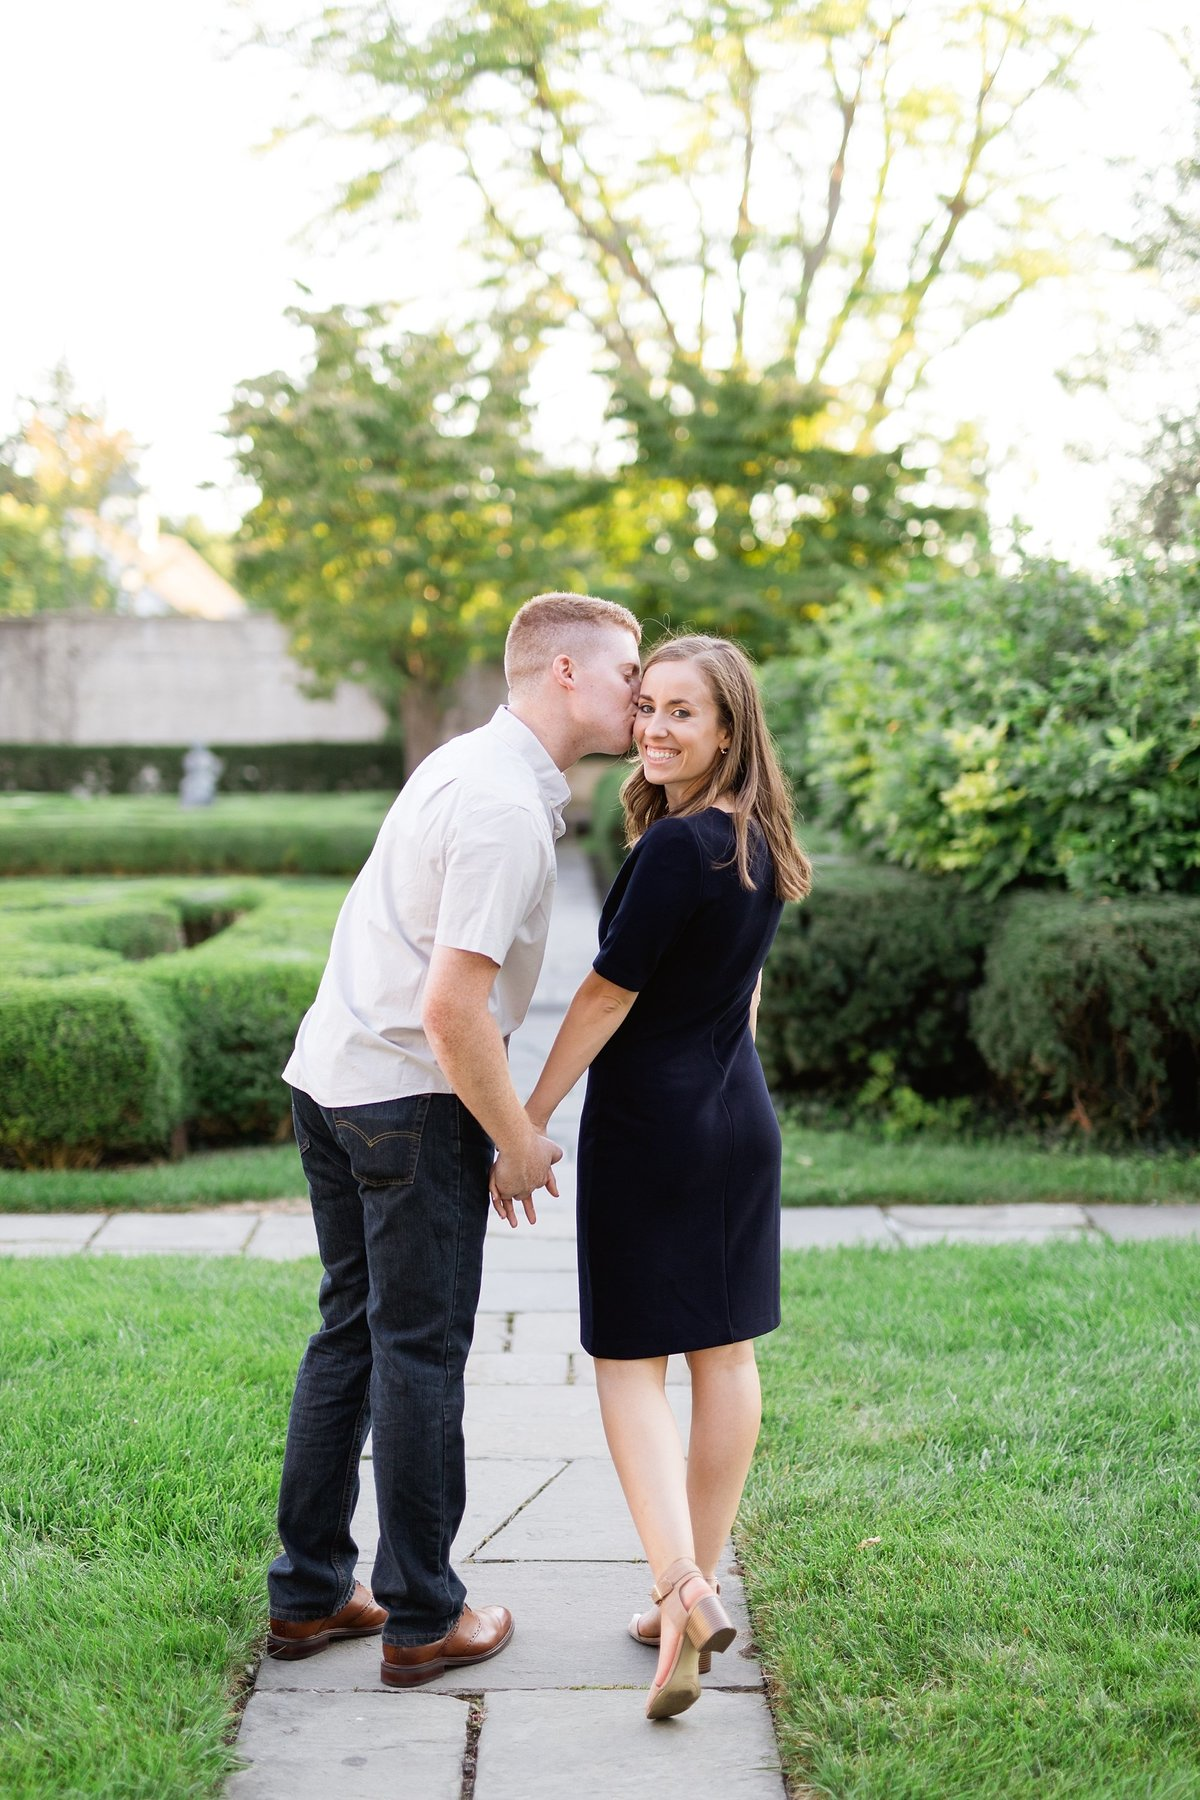 Amanda-Dylan-War-Memorial-Grosse-Pointe-Engagement-Breanne-Rochelle-Photography25